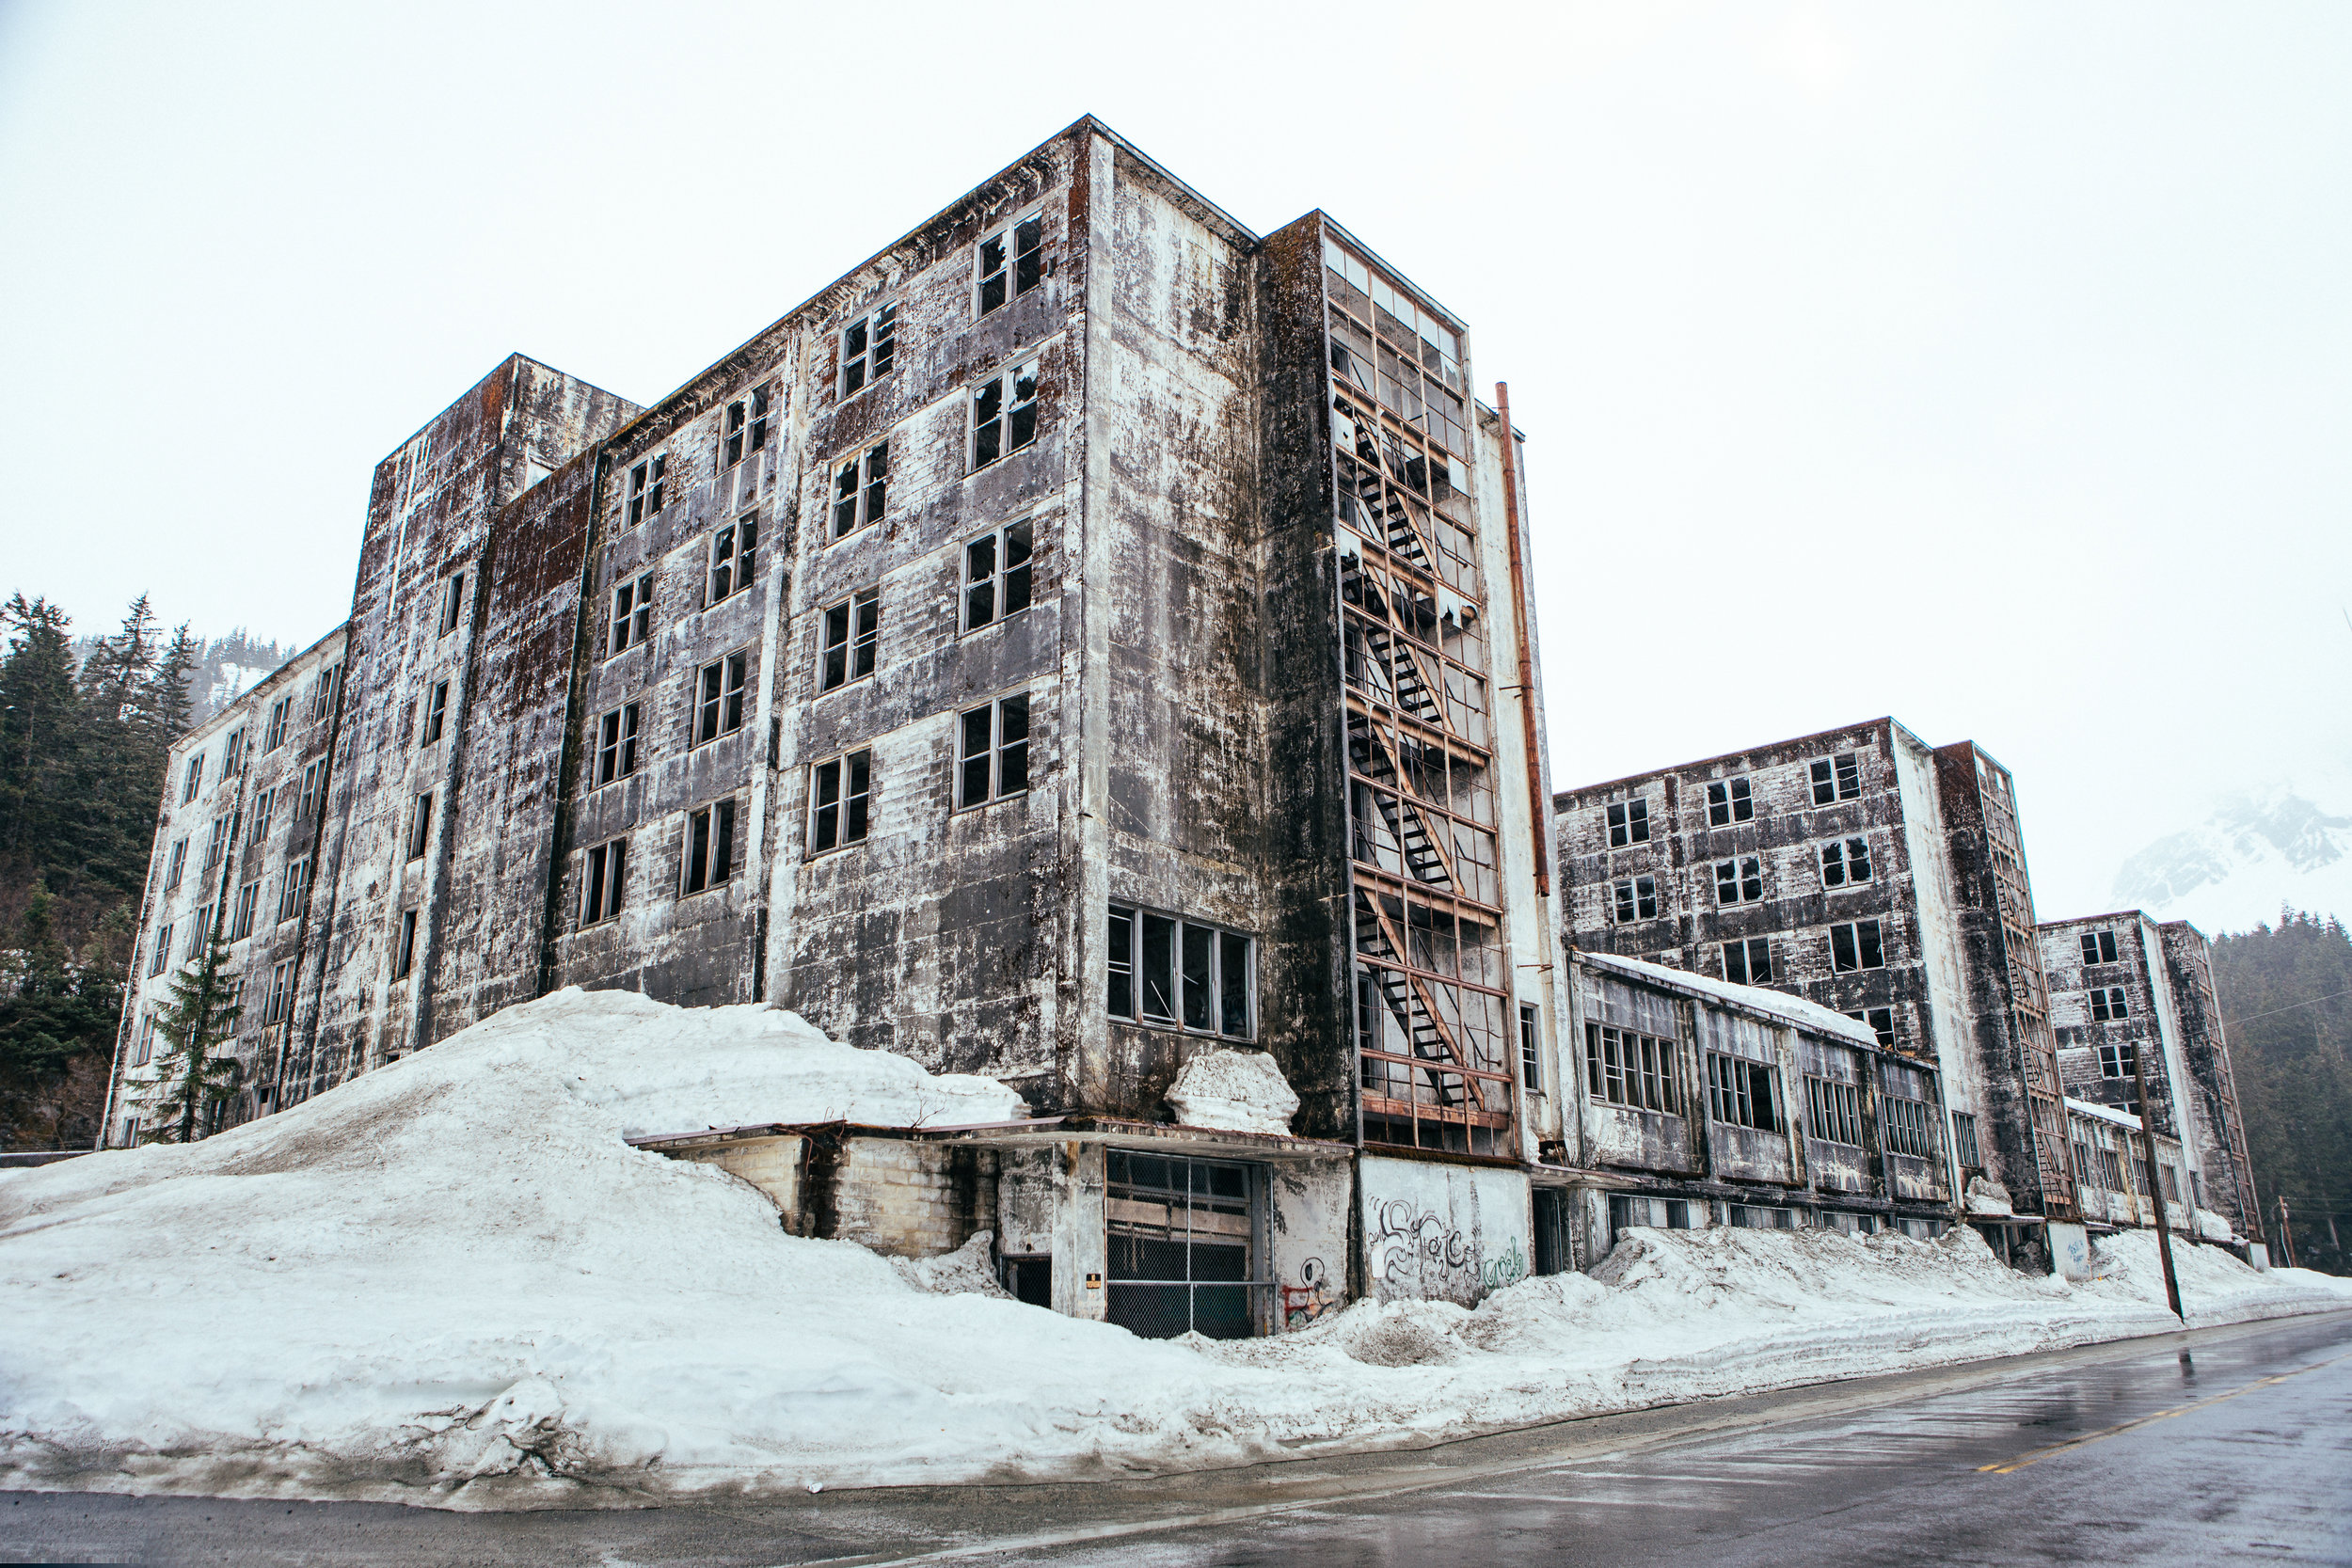 """Once upon a time this place use to house everybody in the entire town and had all the stores, school,hospital, and everything, basically to make it a """"city under one roof""""since the weather gets so bad here. After the great Alaska Earthquake, they built a new one and let this place become a zombie den."""